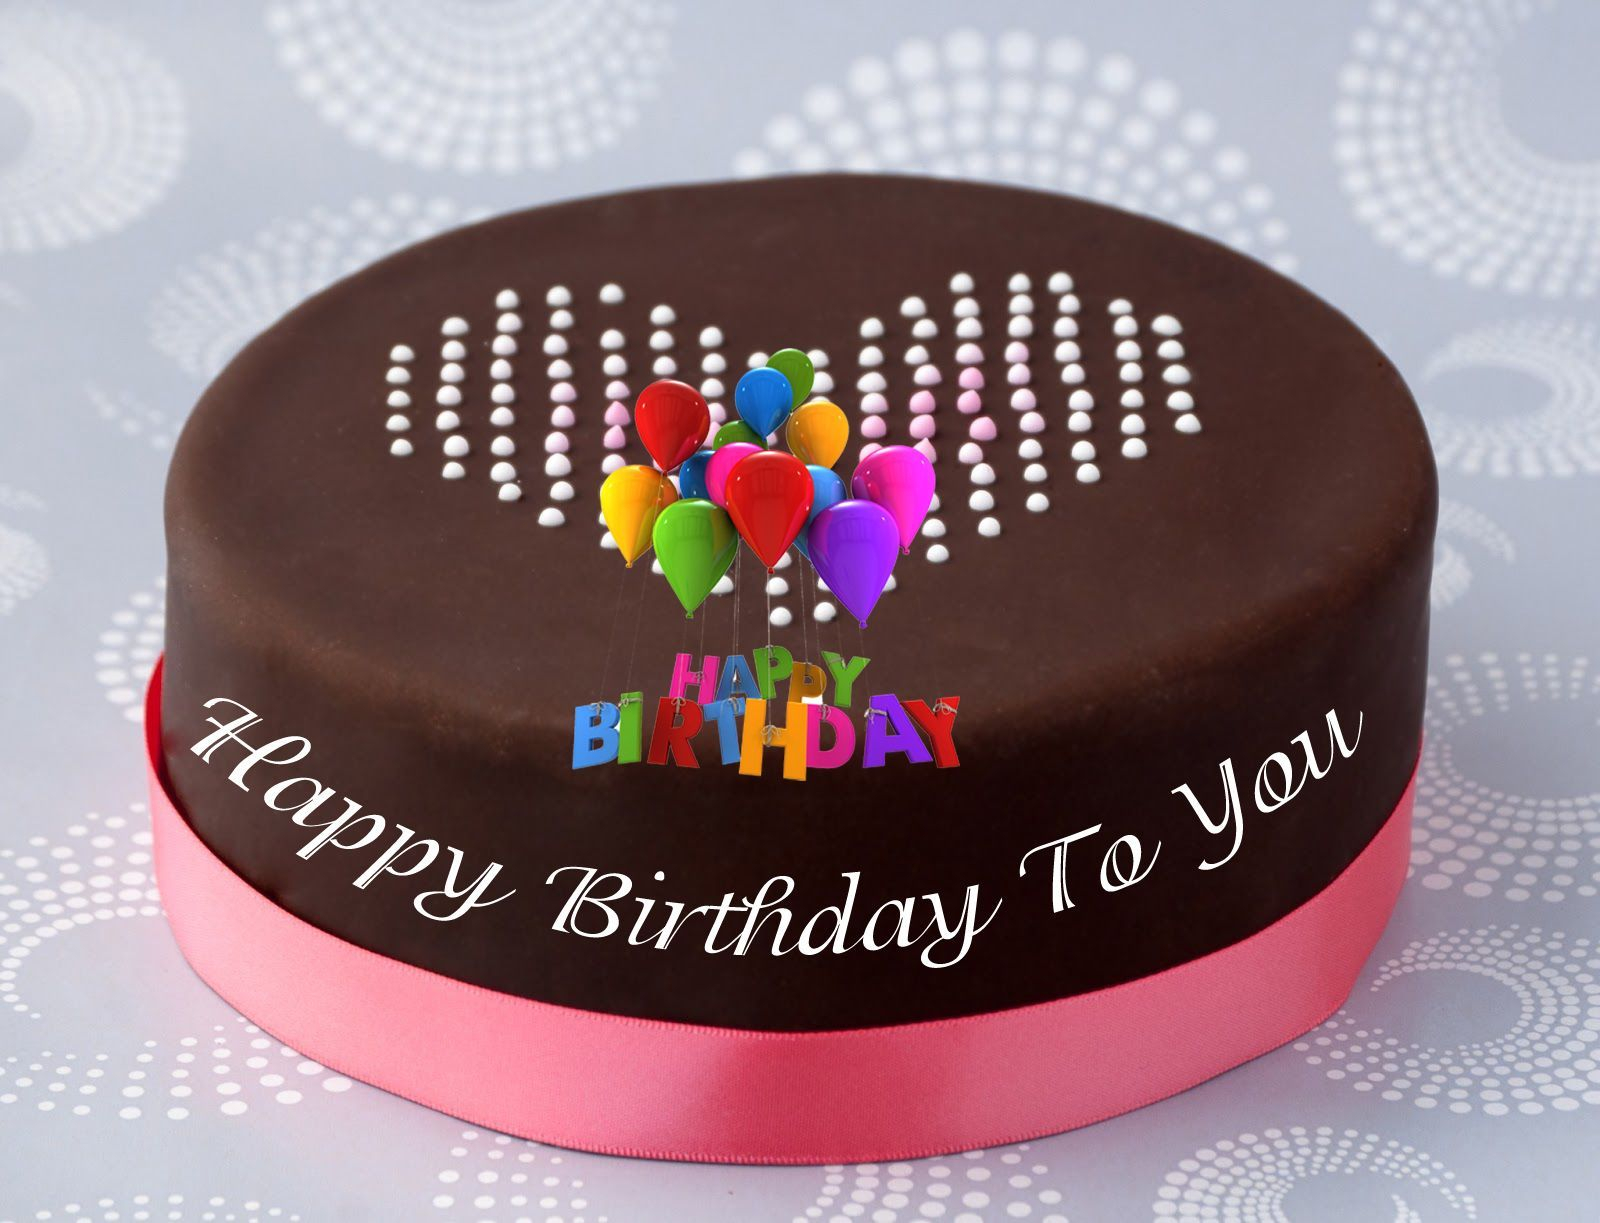 Birthday Cake Images Free Download Pin Laura Thomas On Happy Birthday Quotes I Like Pinterest